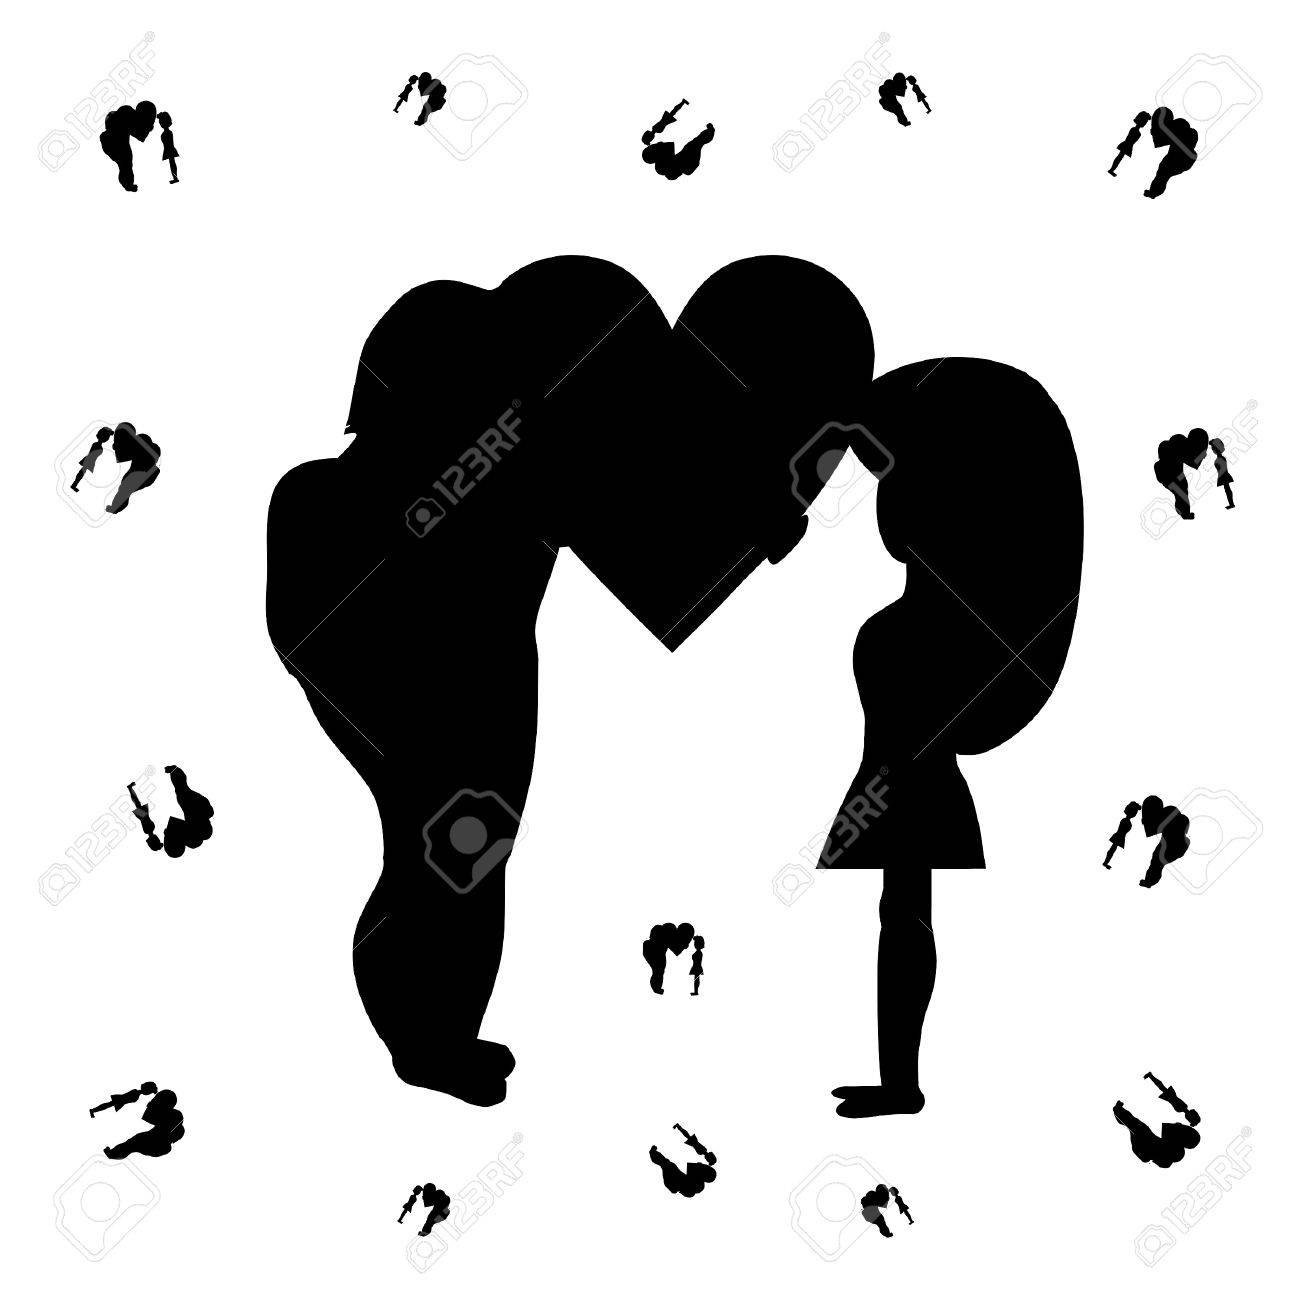 Silhouette of the man giving the heart to the woman Stock Vector - 20184114